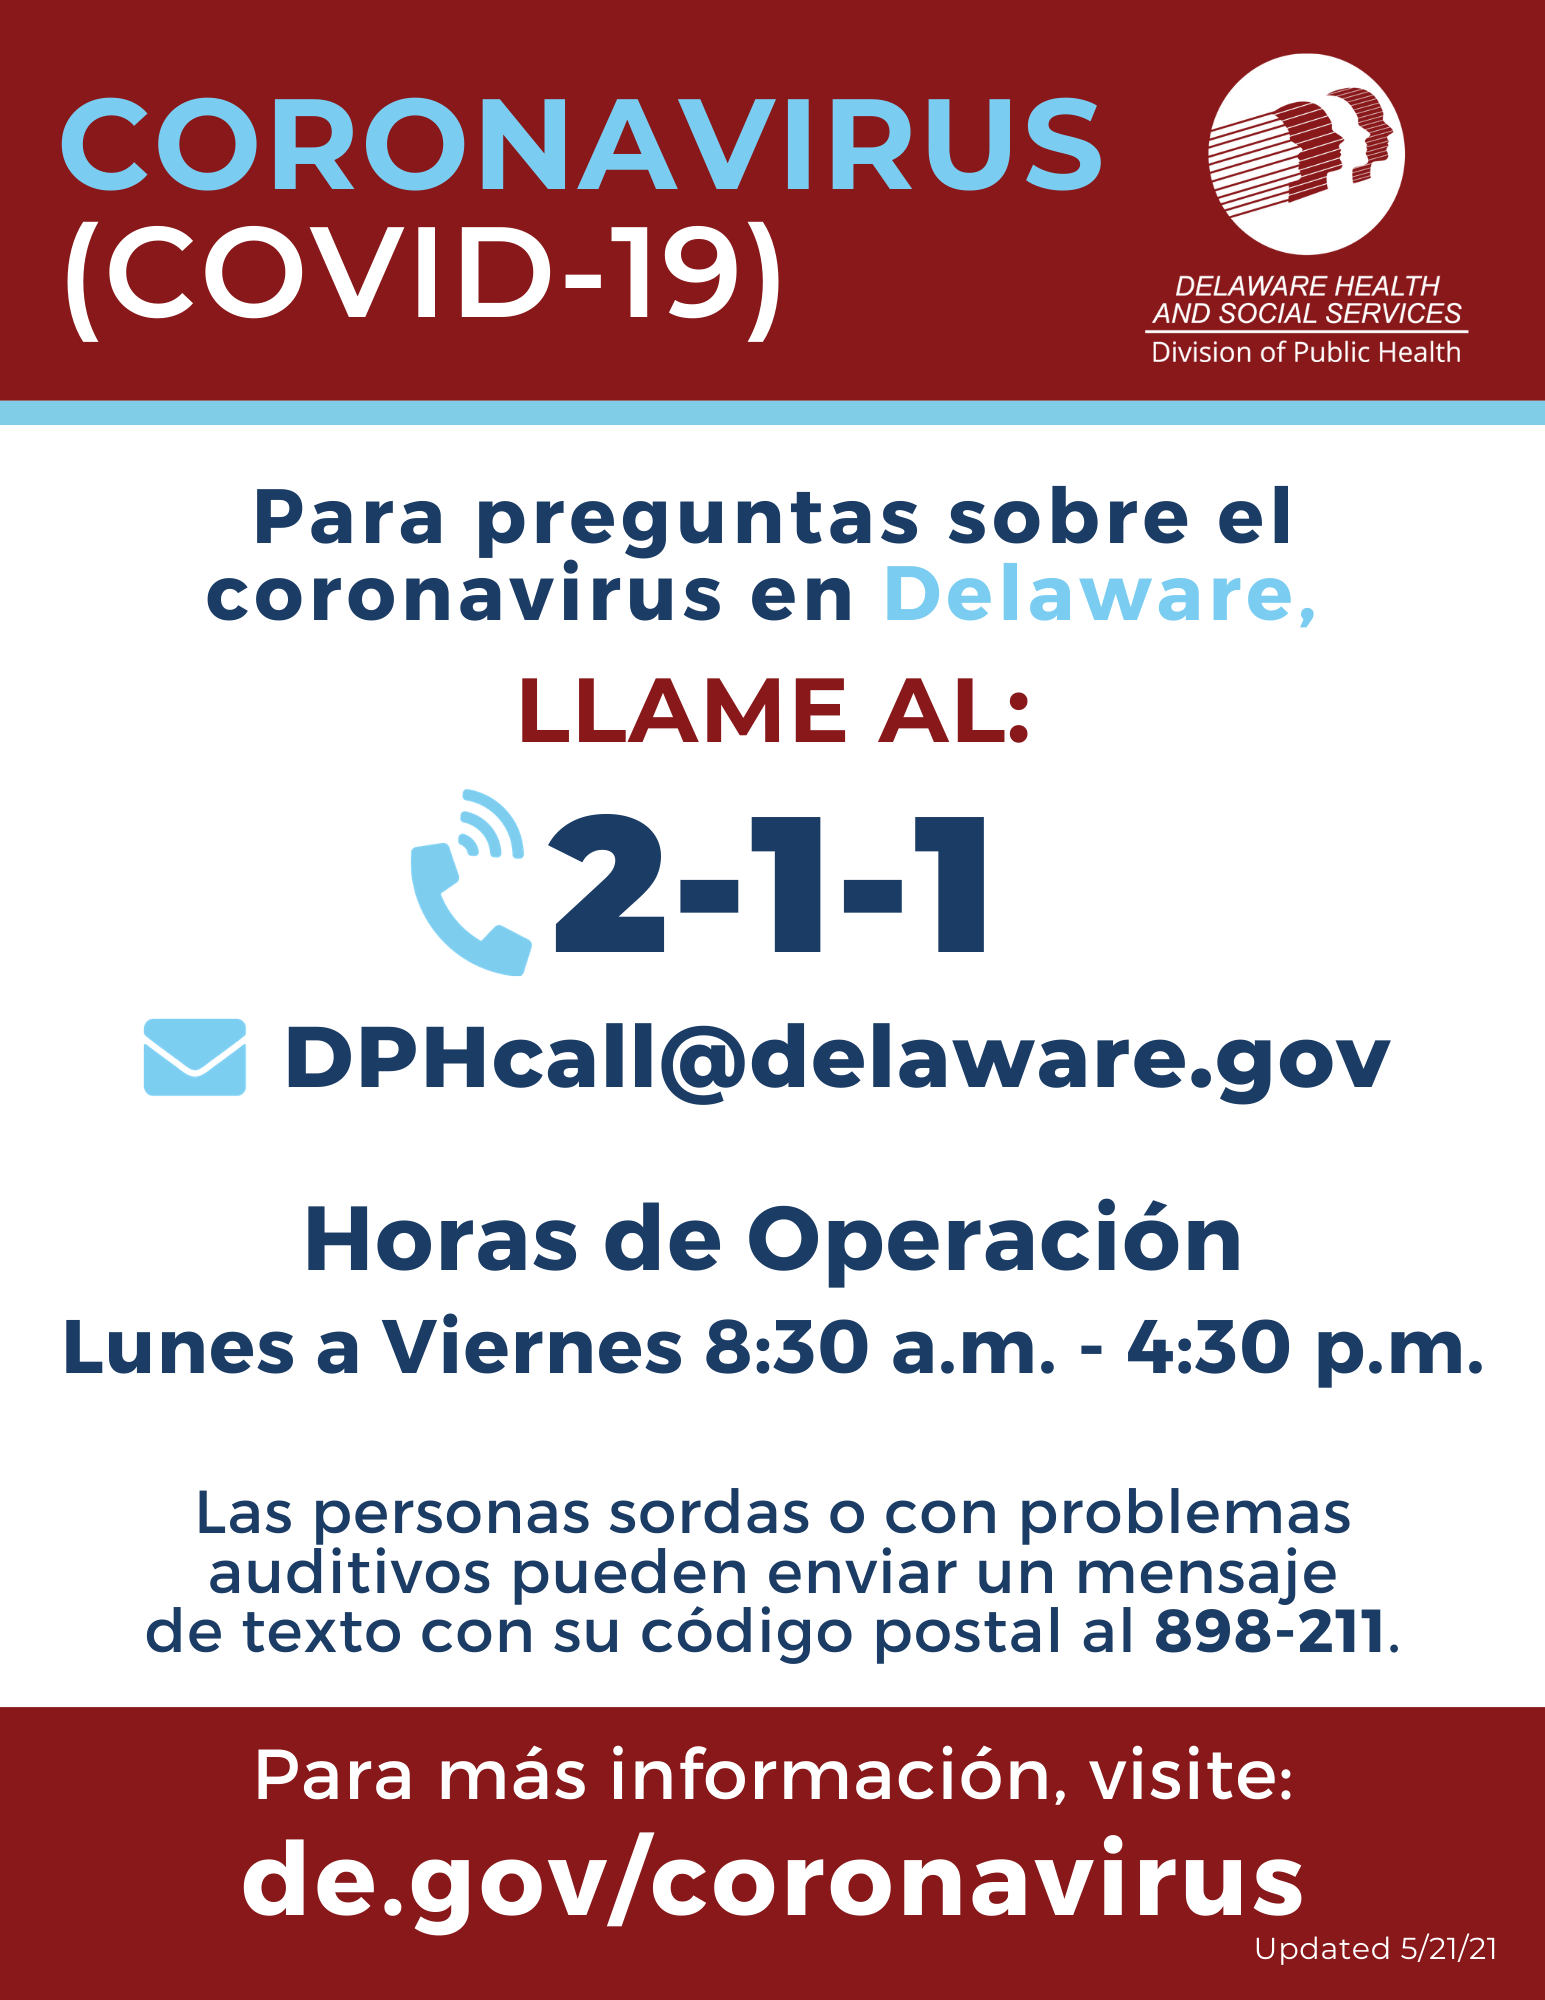 Delaware Public Health Call Center poster. Call 2-1-1 for more information about coronavirus.